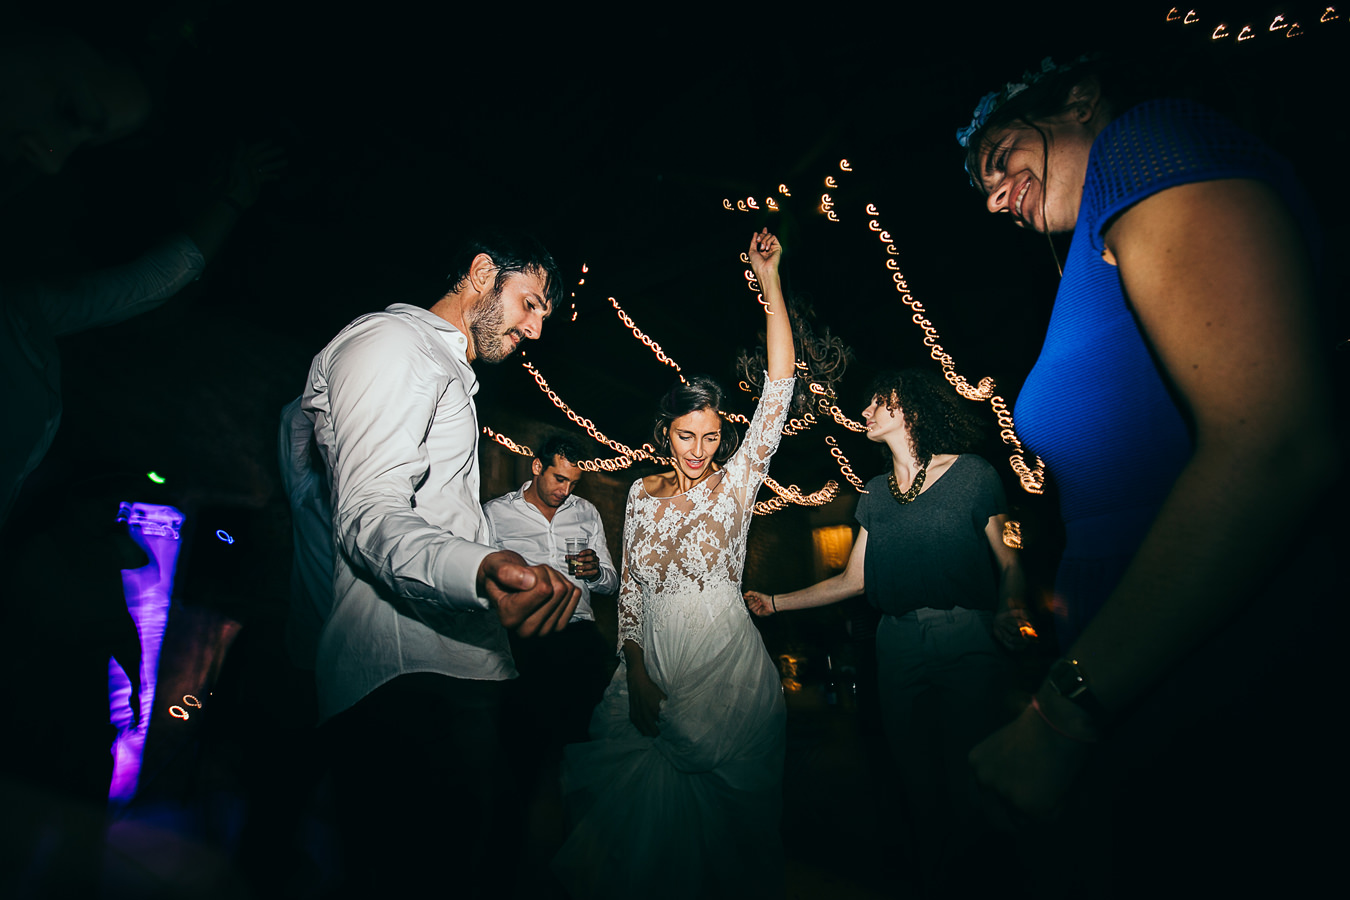 wedding_champetre_domaine_patras_a+p-900.jpg